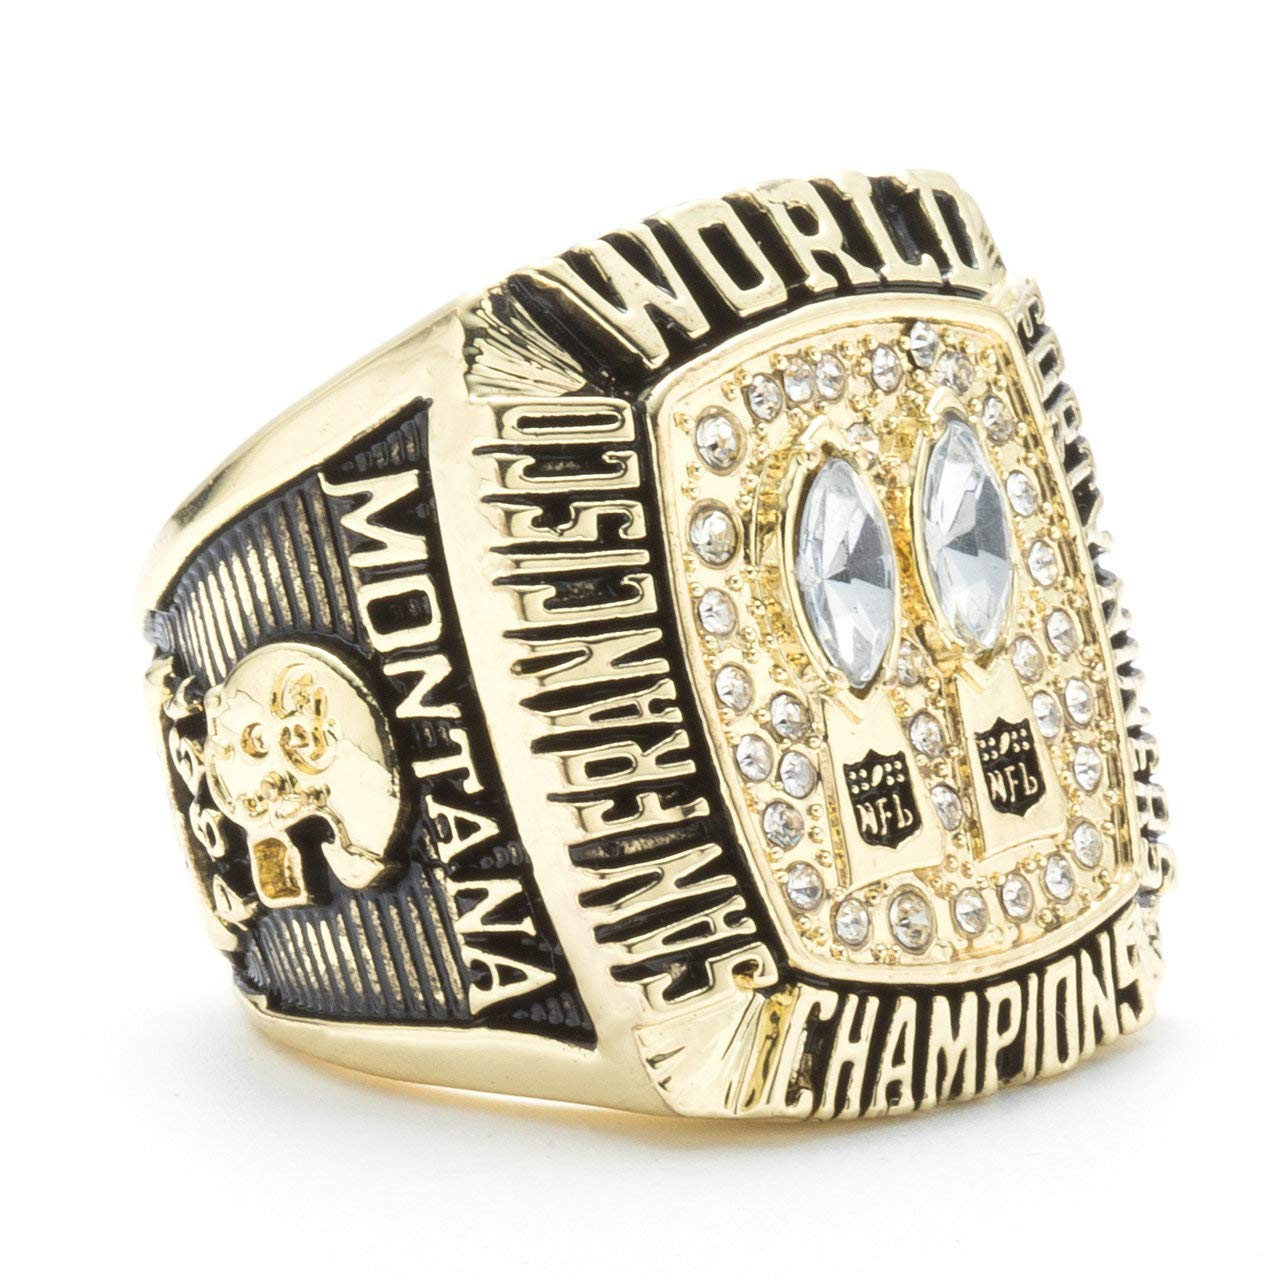 San Francisco 49ers 1984 Super Bowl XIX Rings Fans Gift Size 9-13 Twcuy Football Championship Replica Ring for Men